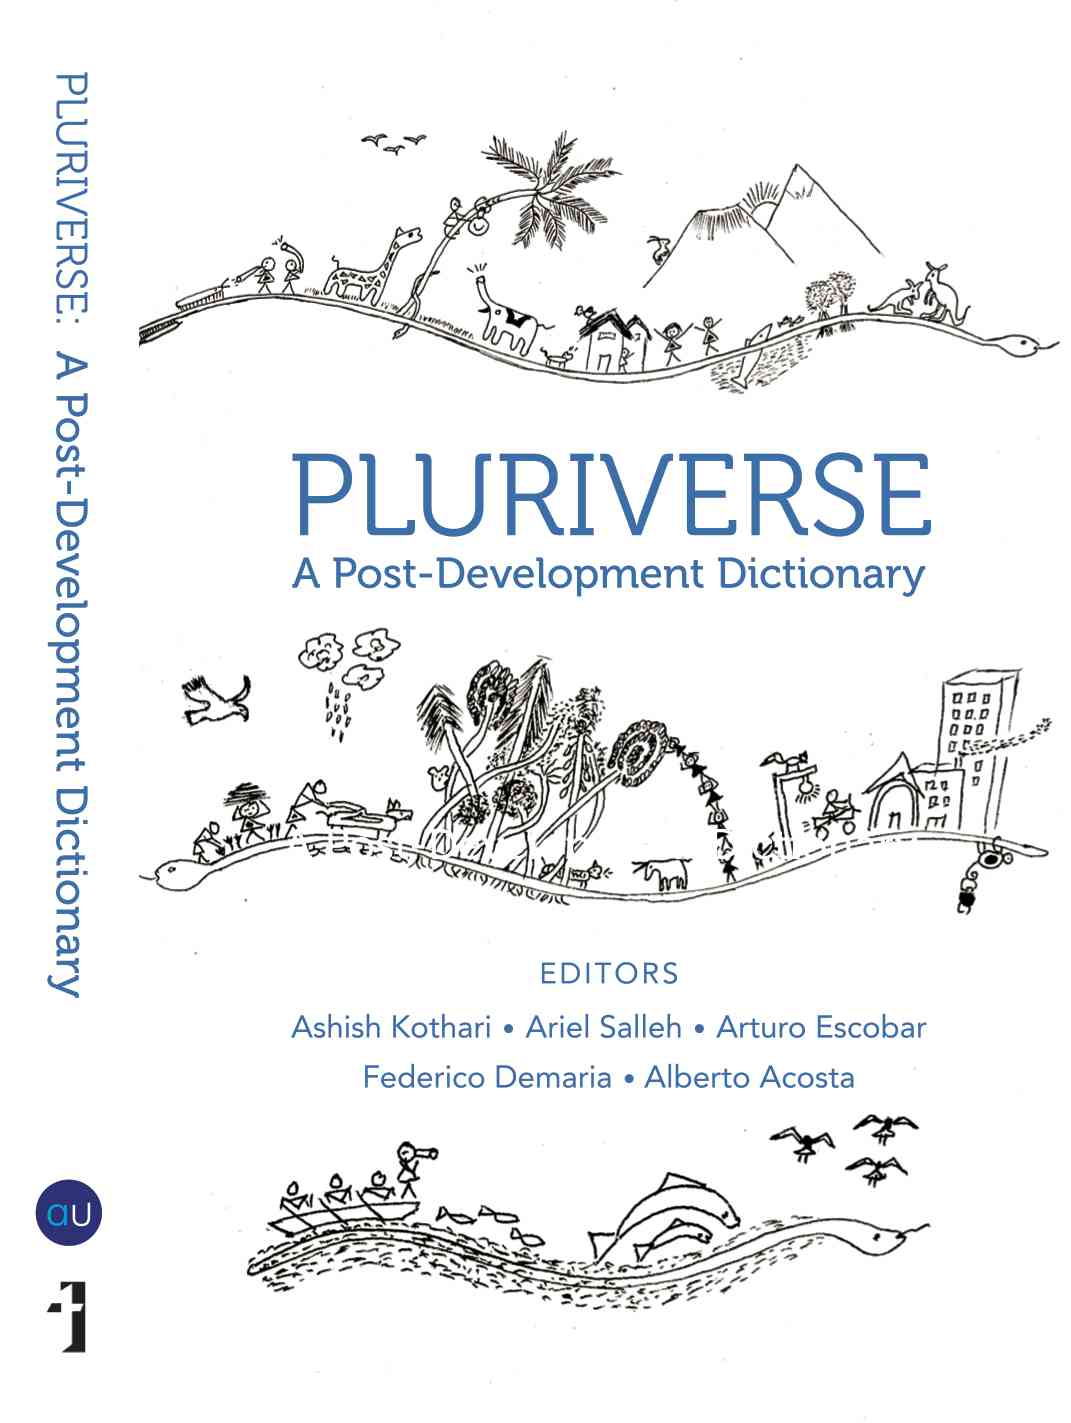 Pluriverse: A Post-Development Dictionary